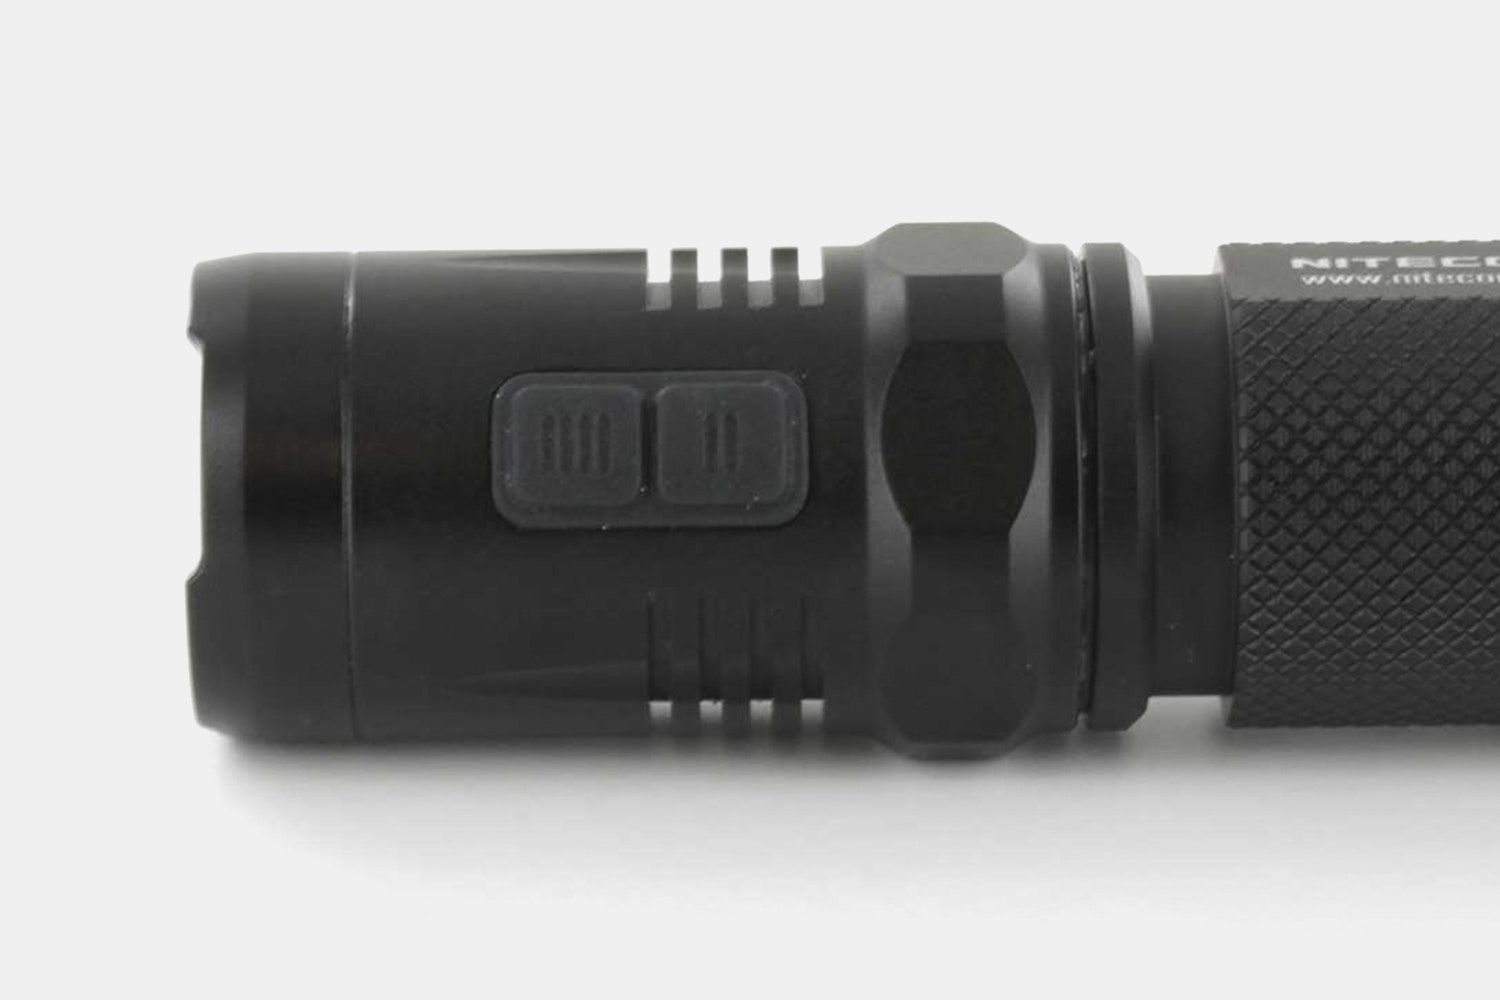 Nitecore MT20C 450-Lumen Flashlight